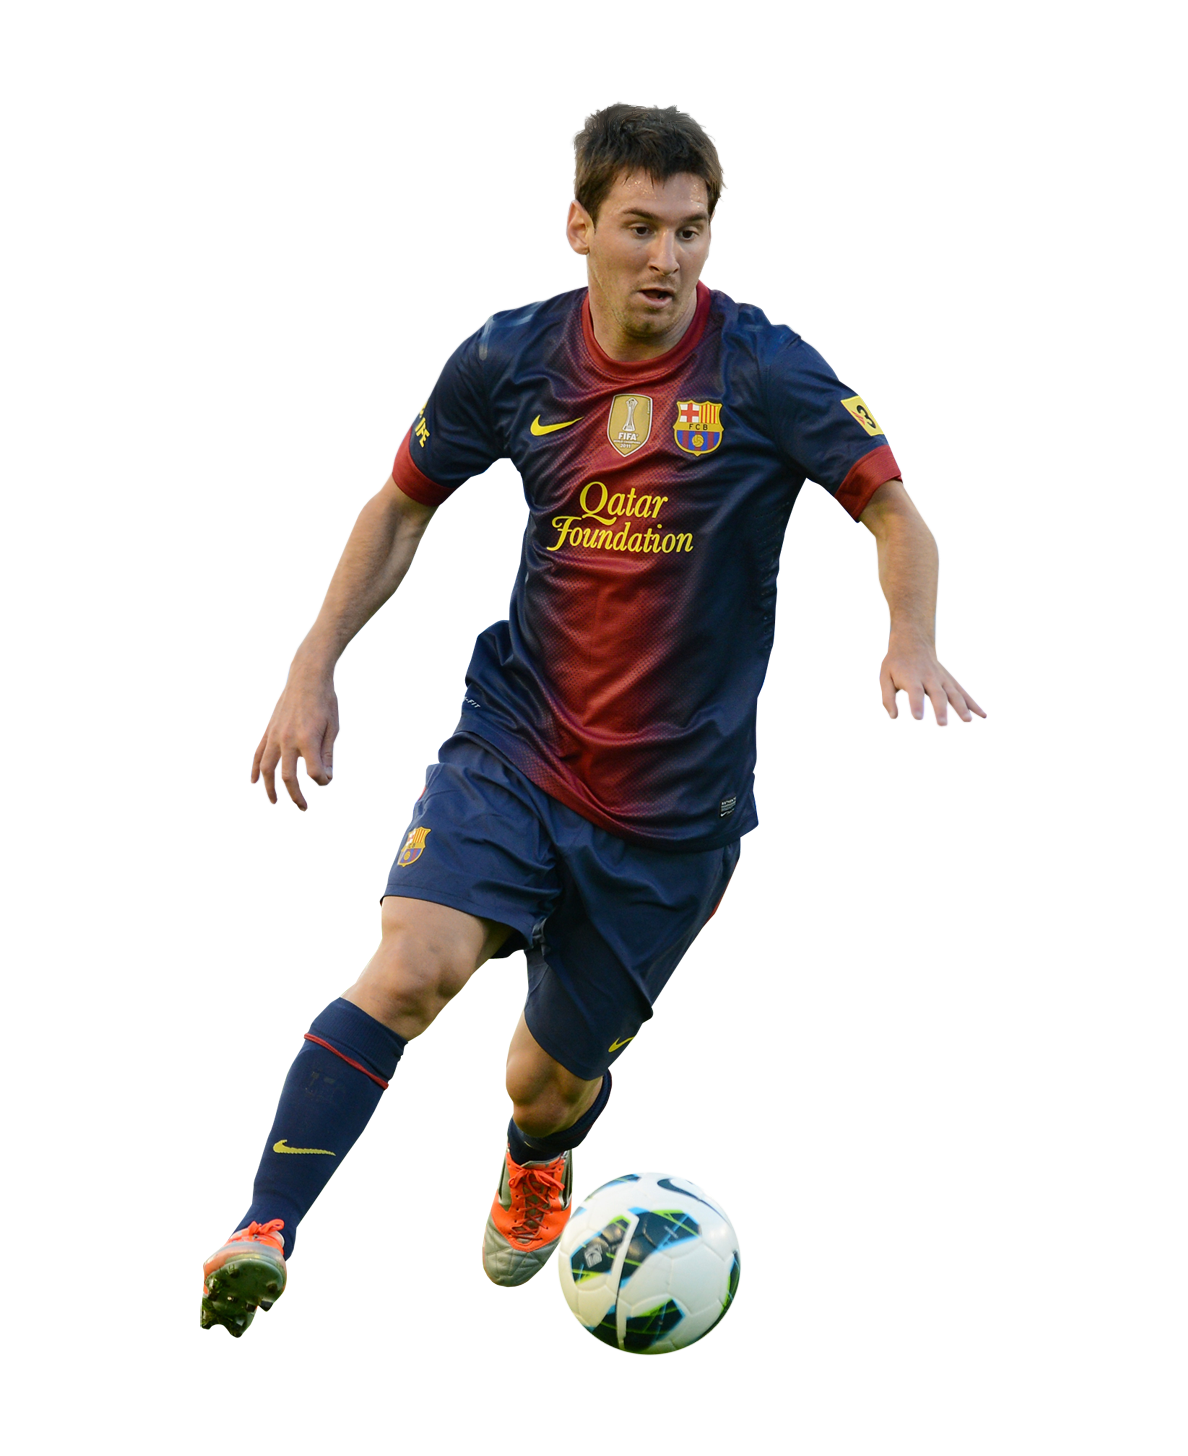 Lionel Messi Clipart & Look At Clip Art Images.